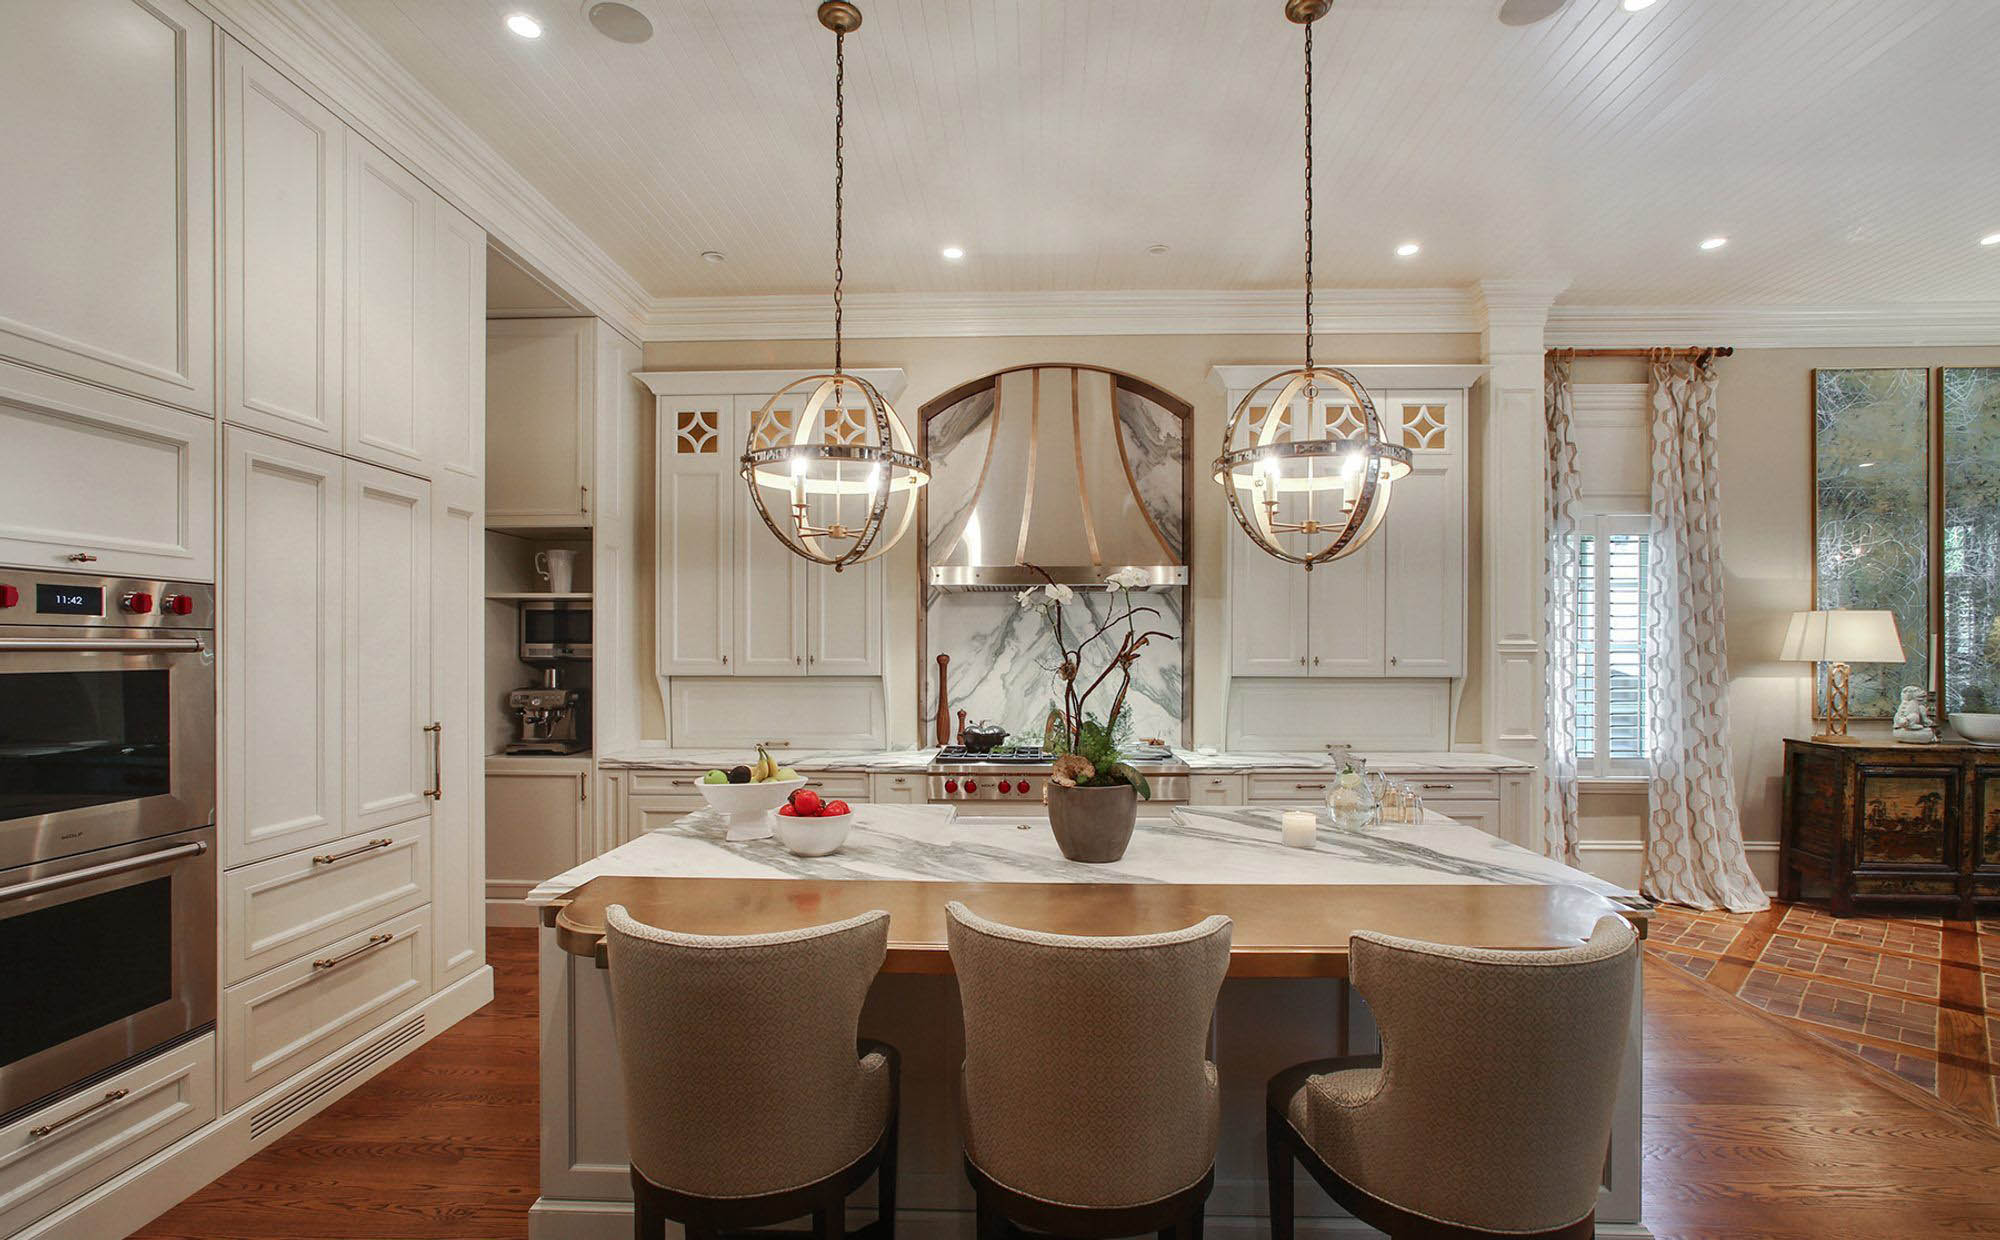 Warm cream kitchen cabinets with marble quartz center island and rich hardwood floors.